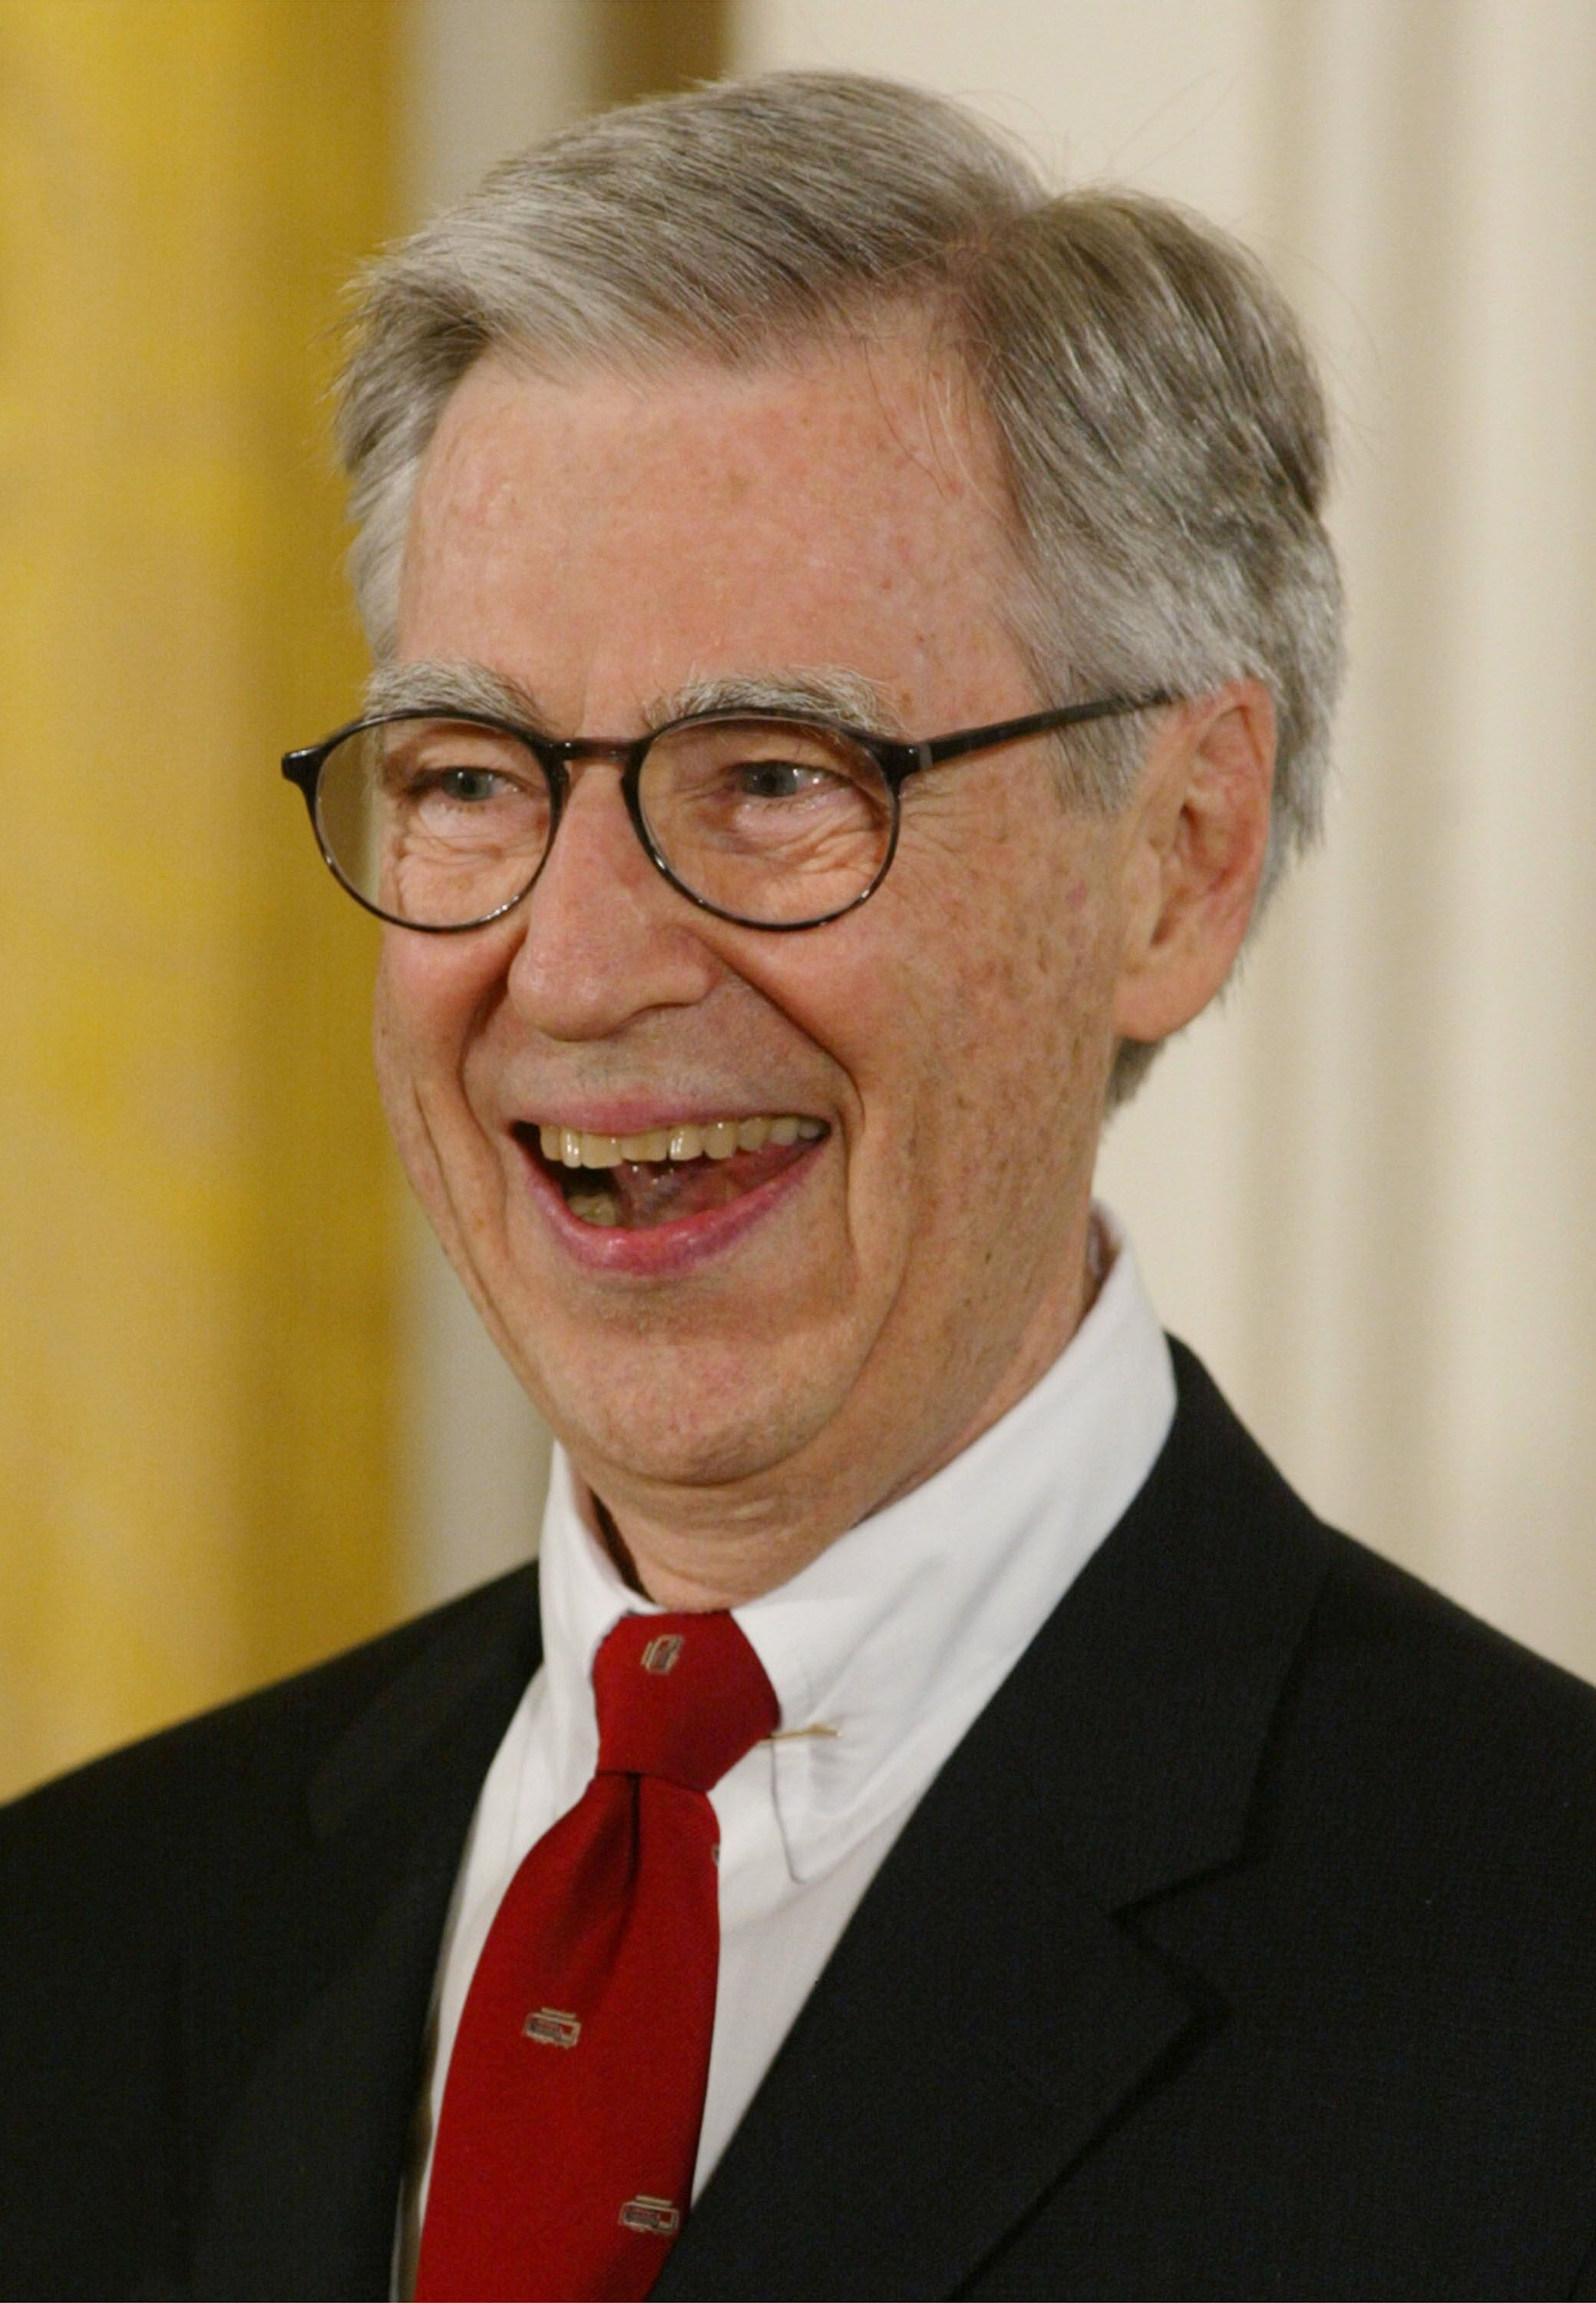 Fred Rogers smiles after receiving the Presidential Medal of Freedom Award. | Source: Getty Images